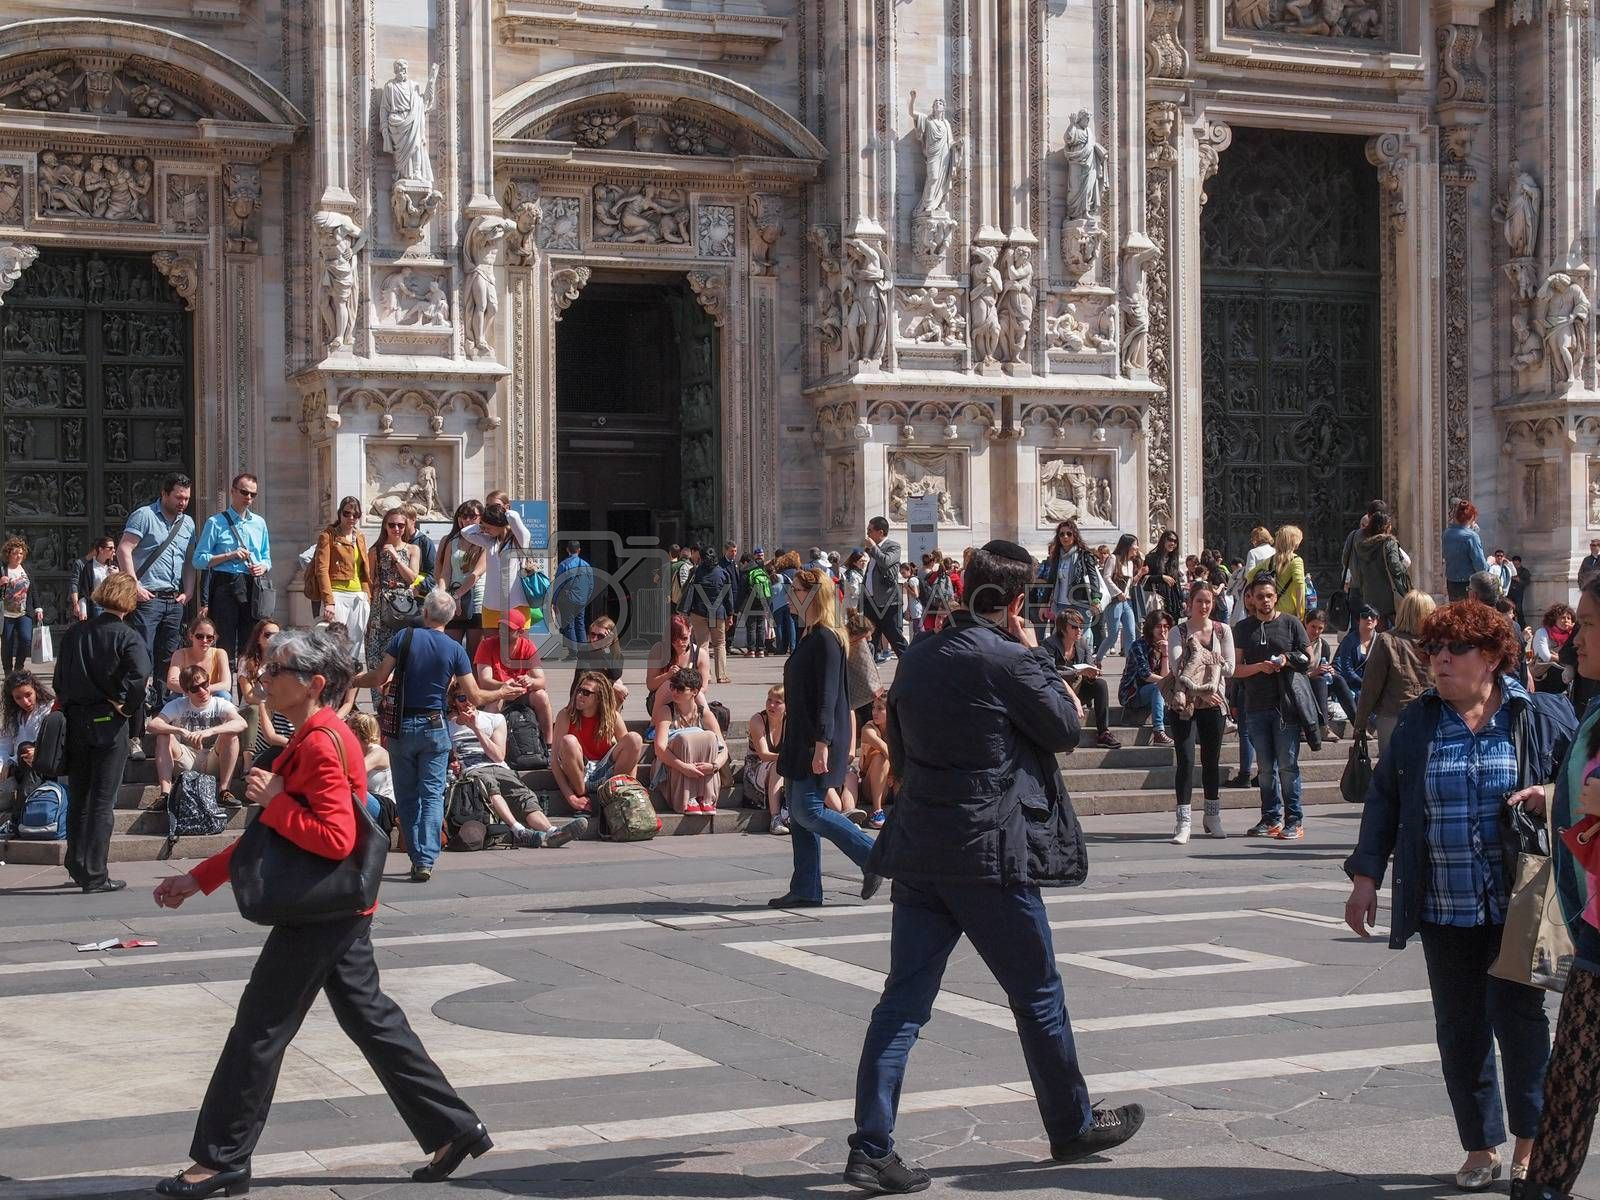 MILAN, ITALY - APRIL 10, 2014: Tourists visiting the Piazza Duomo square in Milan Italy